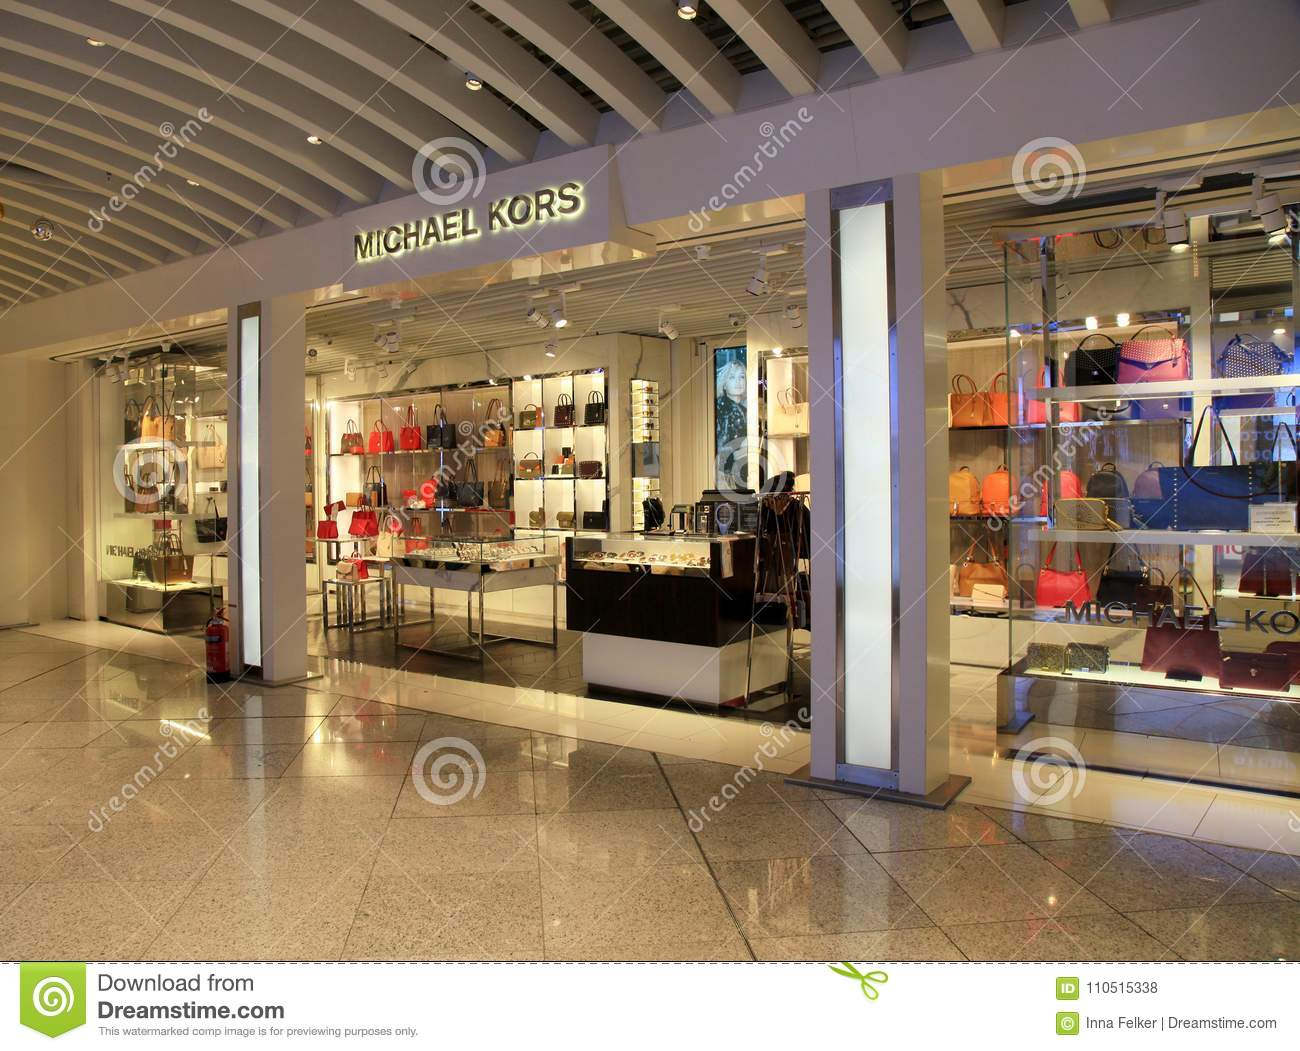 dd2358274df3 ATHENS, GREECE - JANUARY 6, 2018: Michael Kors duty free shop at  Eleftherios Venizelos airport in Athens, Greece